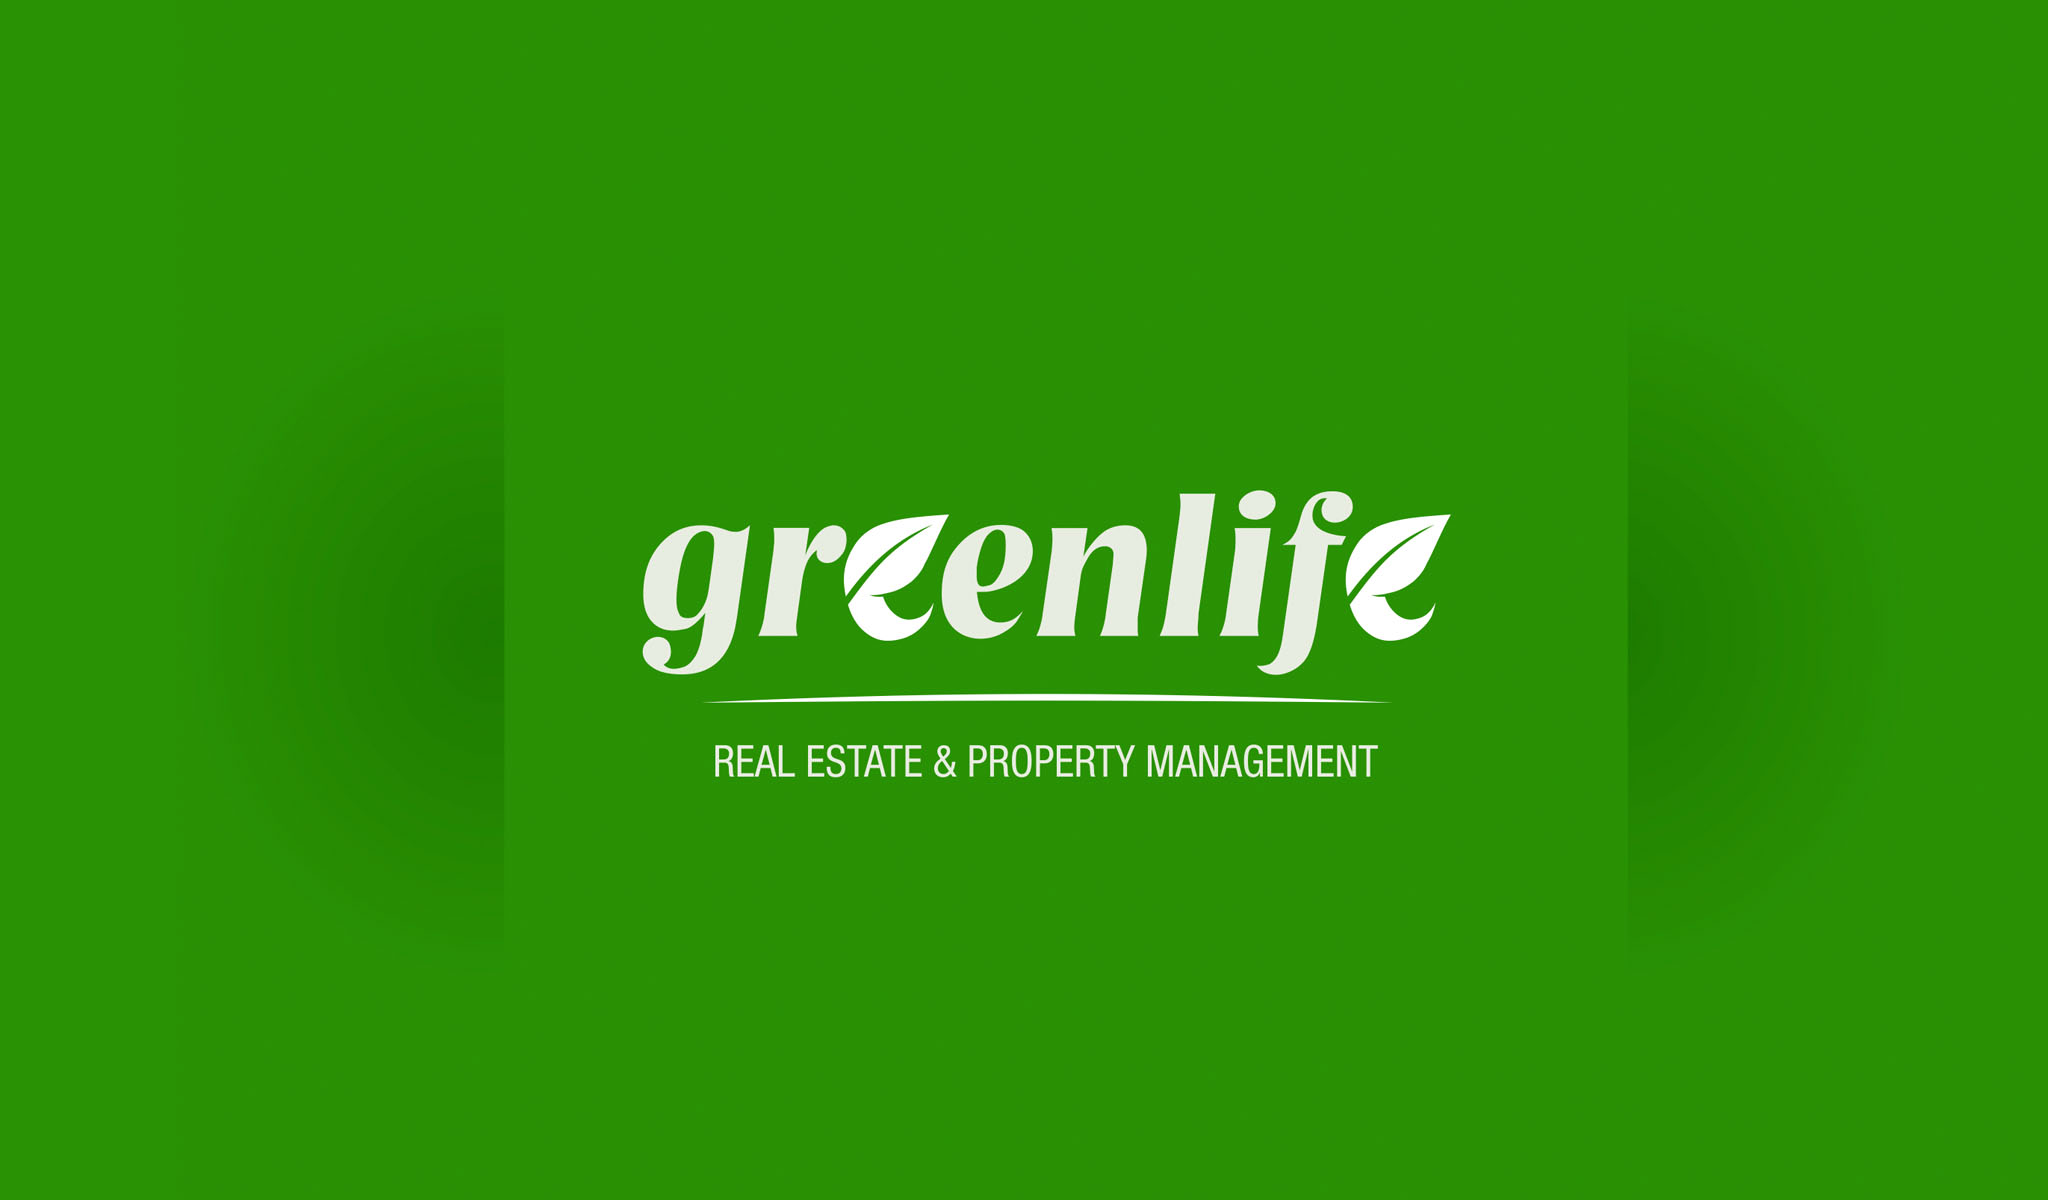 Greenlife Real Estate